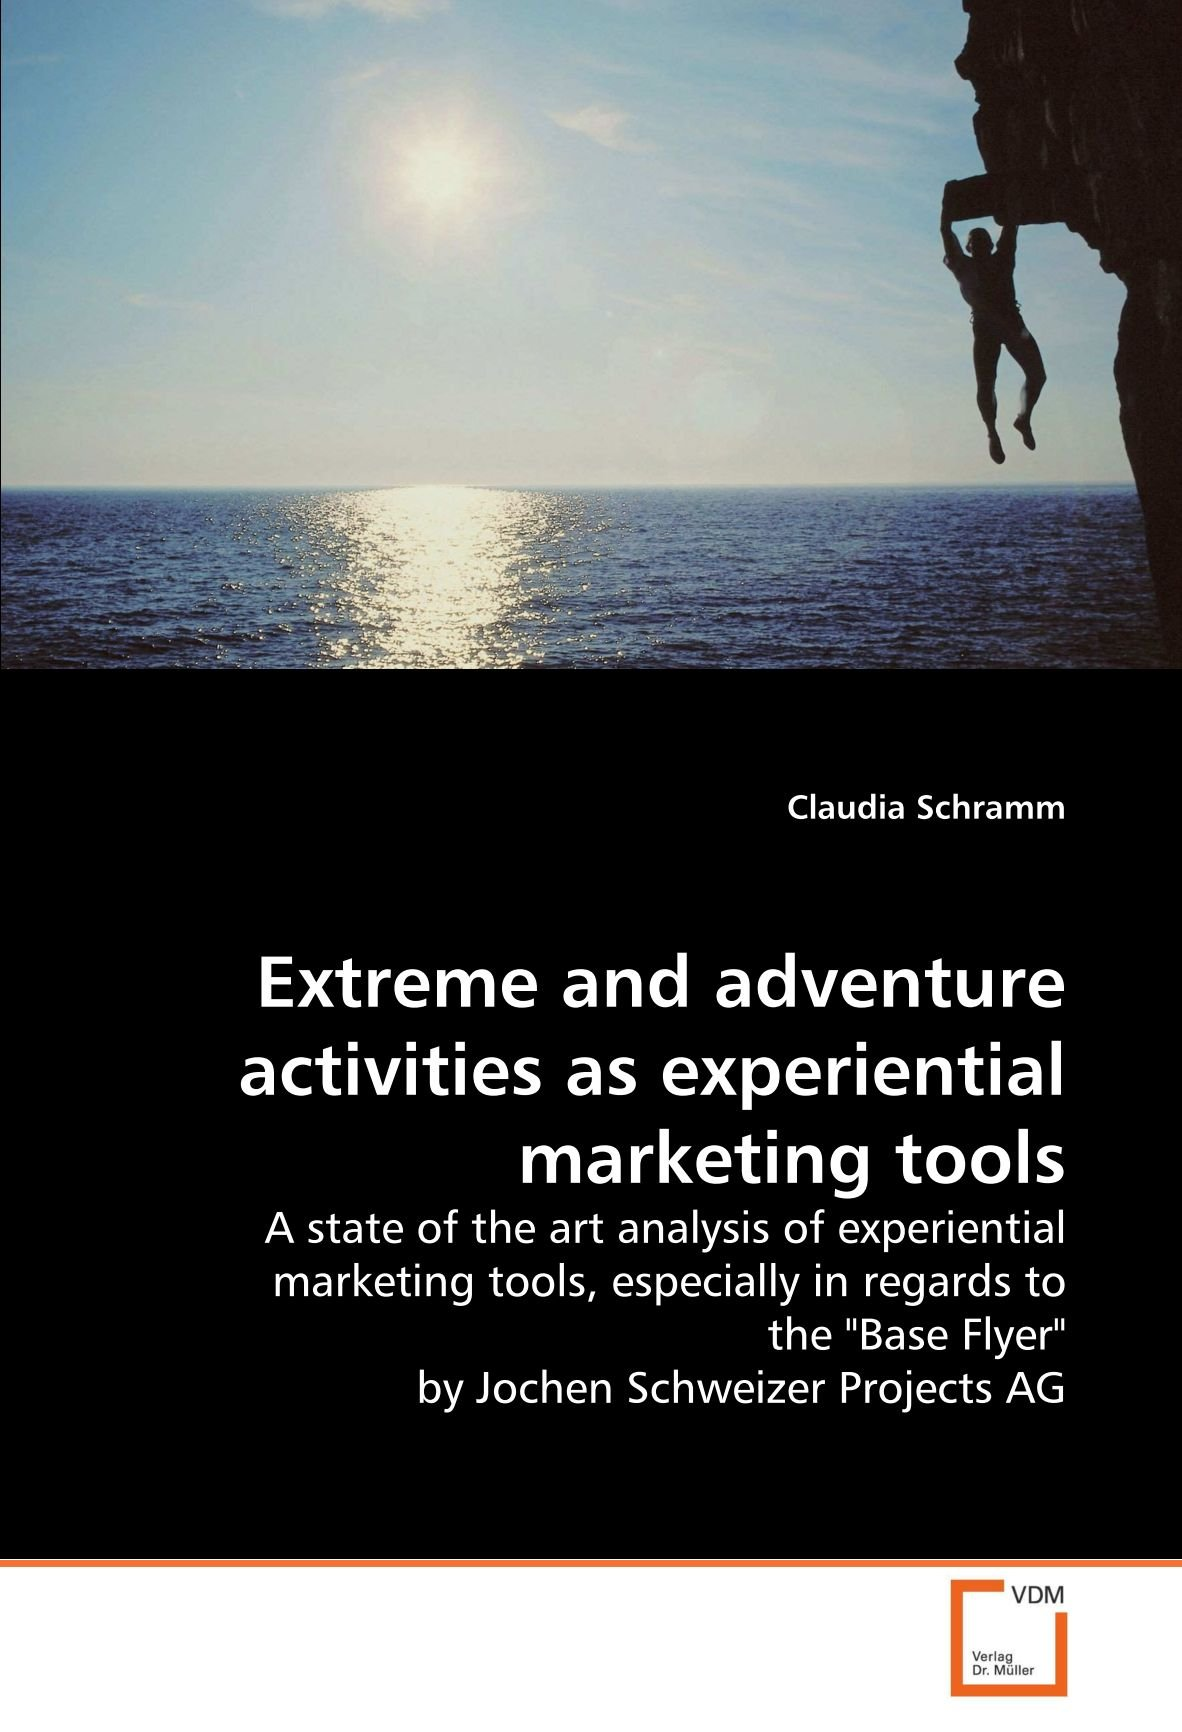 """Extreme and adventure activities as experiential marketing tools: A state of the art analysis of experiential marketing tools, especially in regards to the """"Base Flyer"""" by Jochen Schweizer Projects AG pdf epub"""